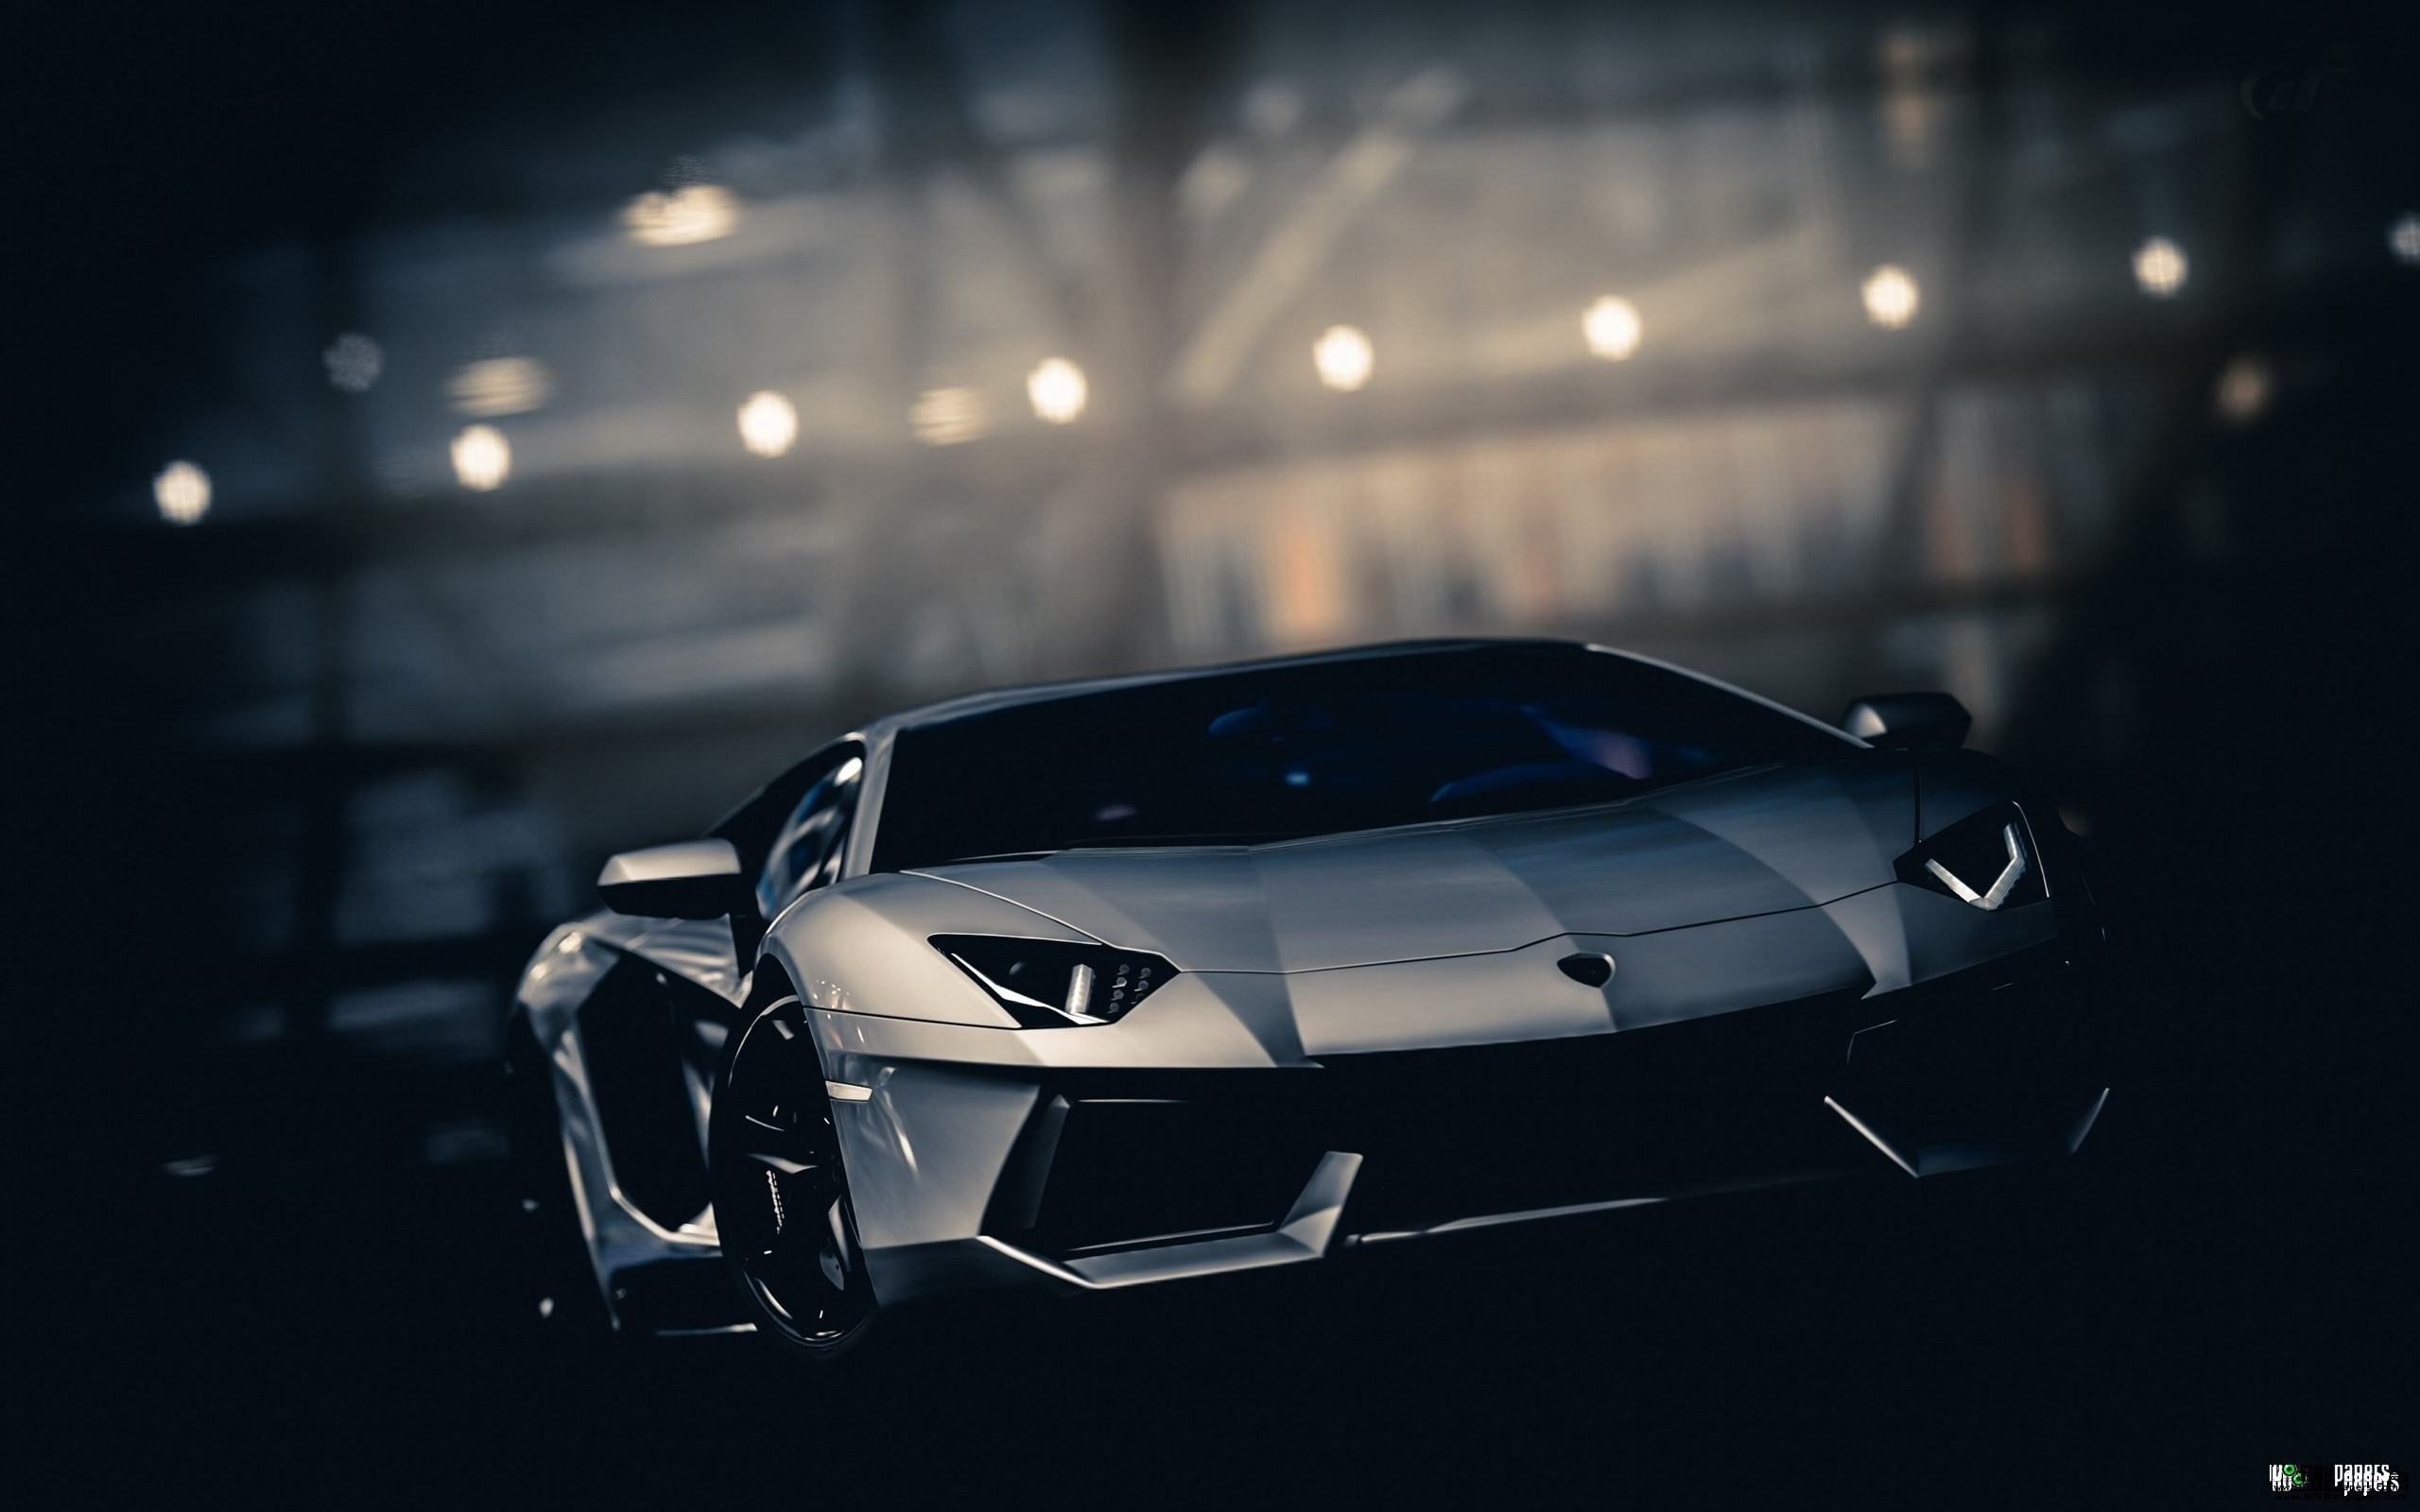 live car wallpaper for